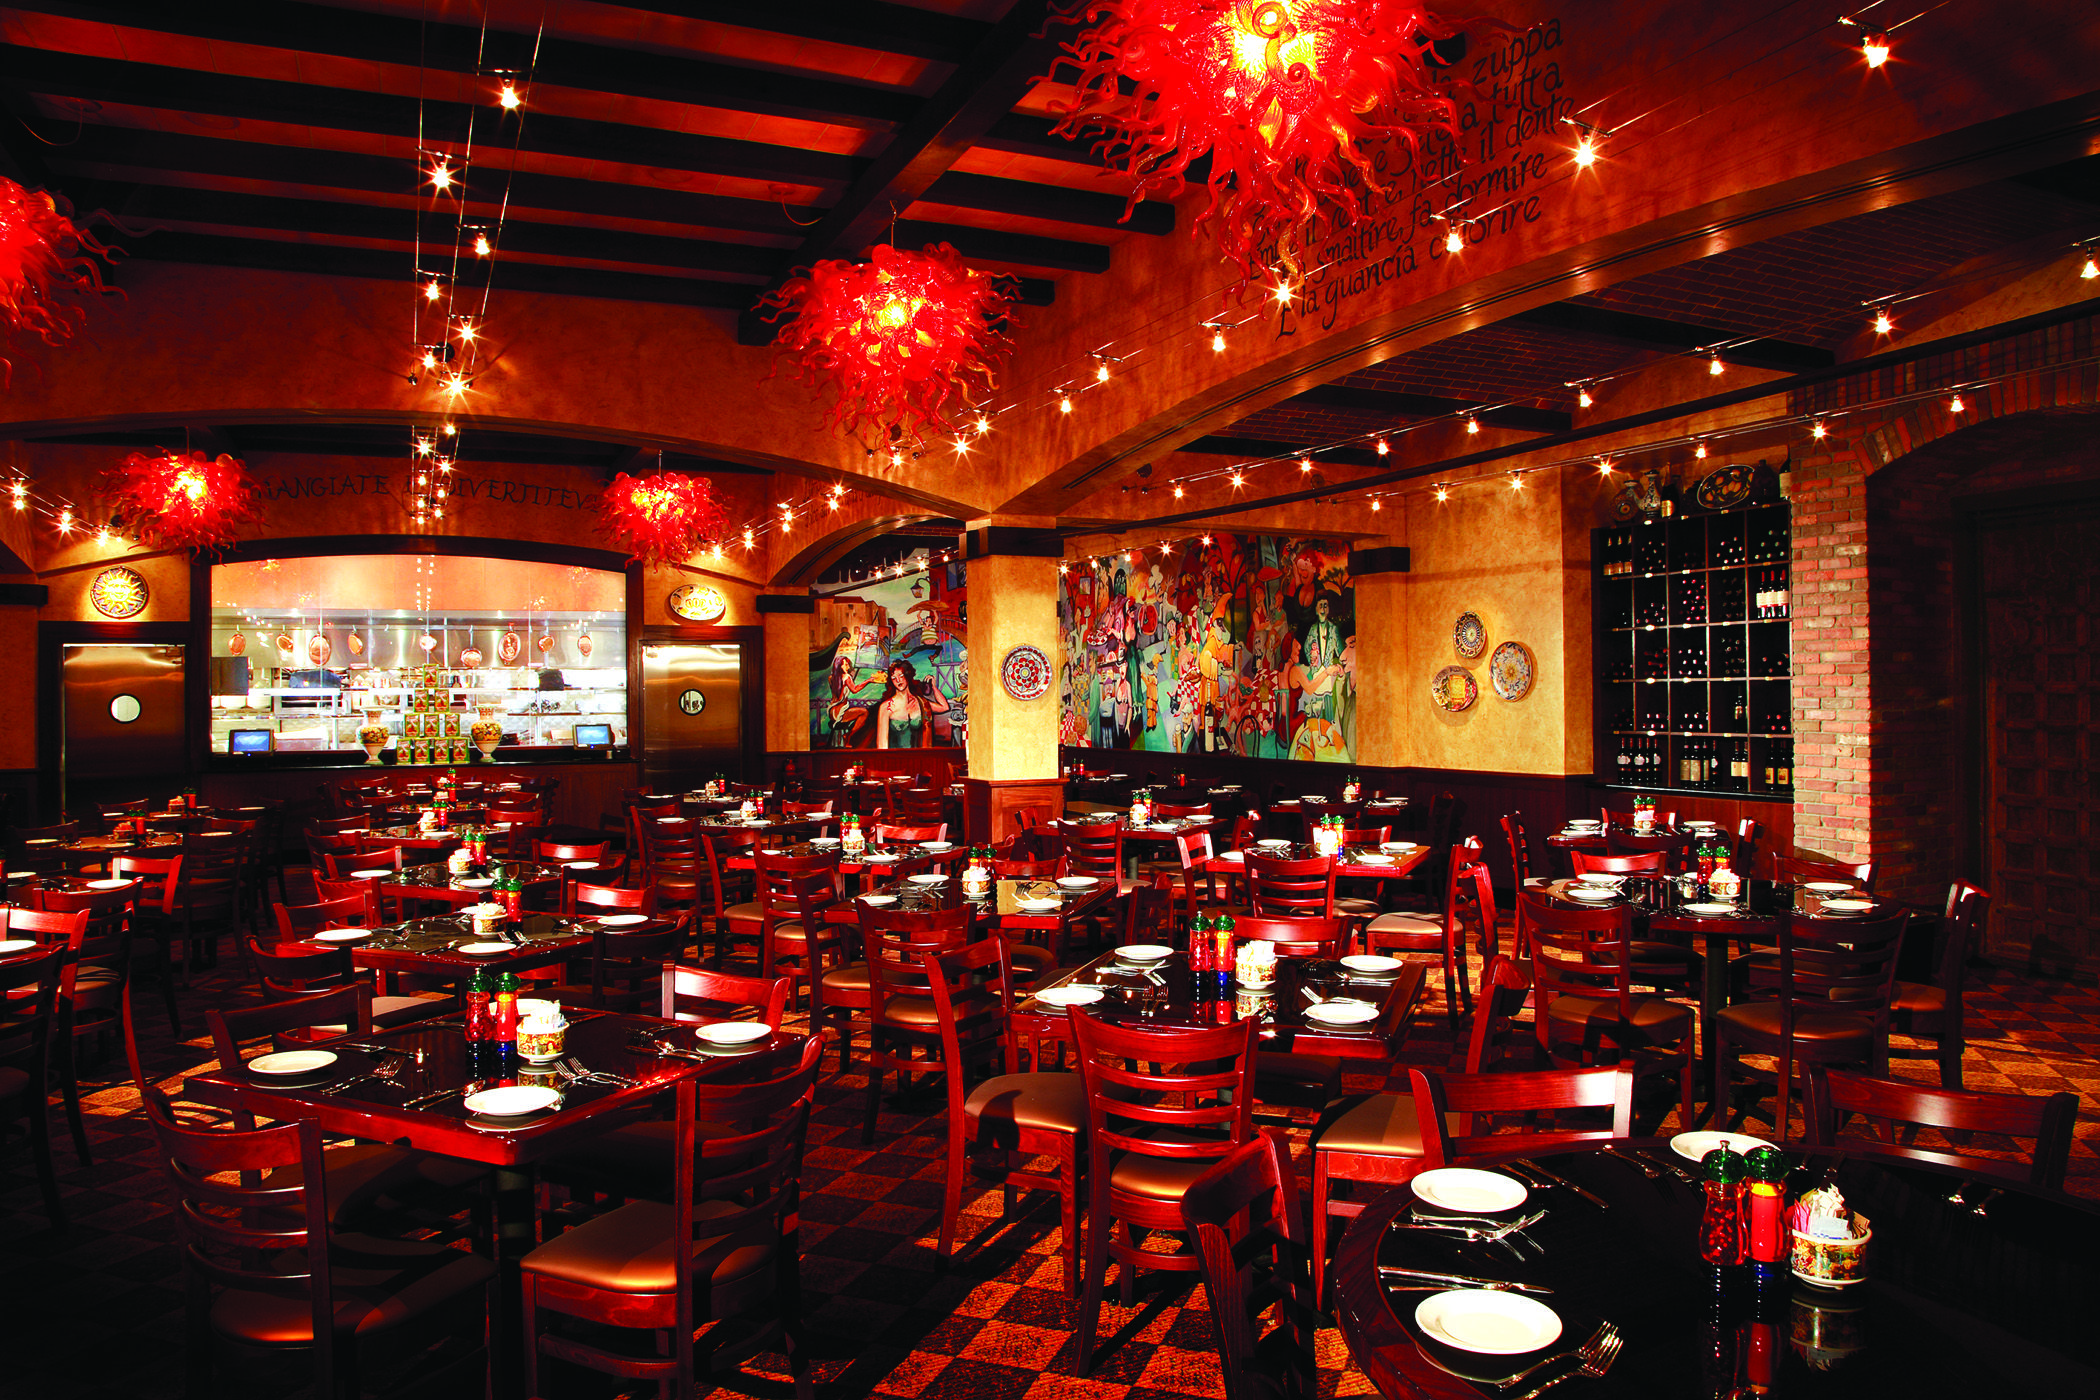 Dine At Grotto Restaurant The Best Italian In All Of Downtown Las Vegas